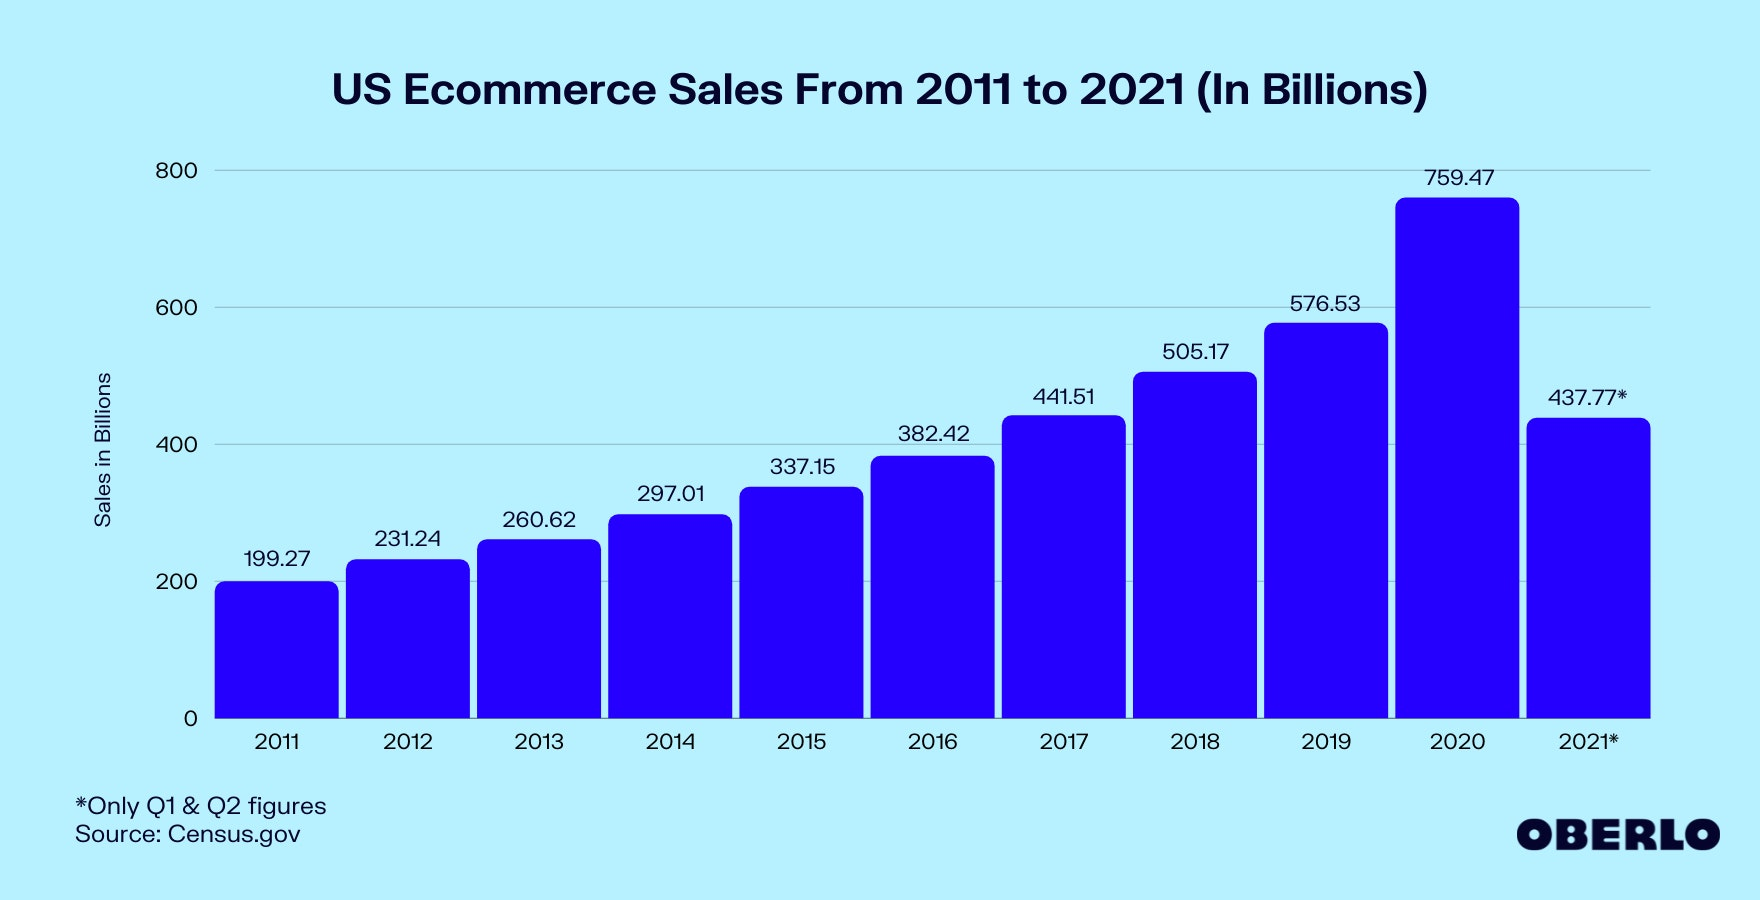 Chart of US Ecommerce Sales From 2011 to 2021 (In Billions)